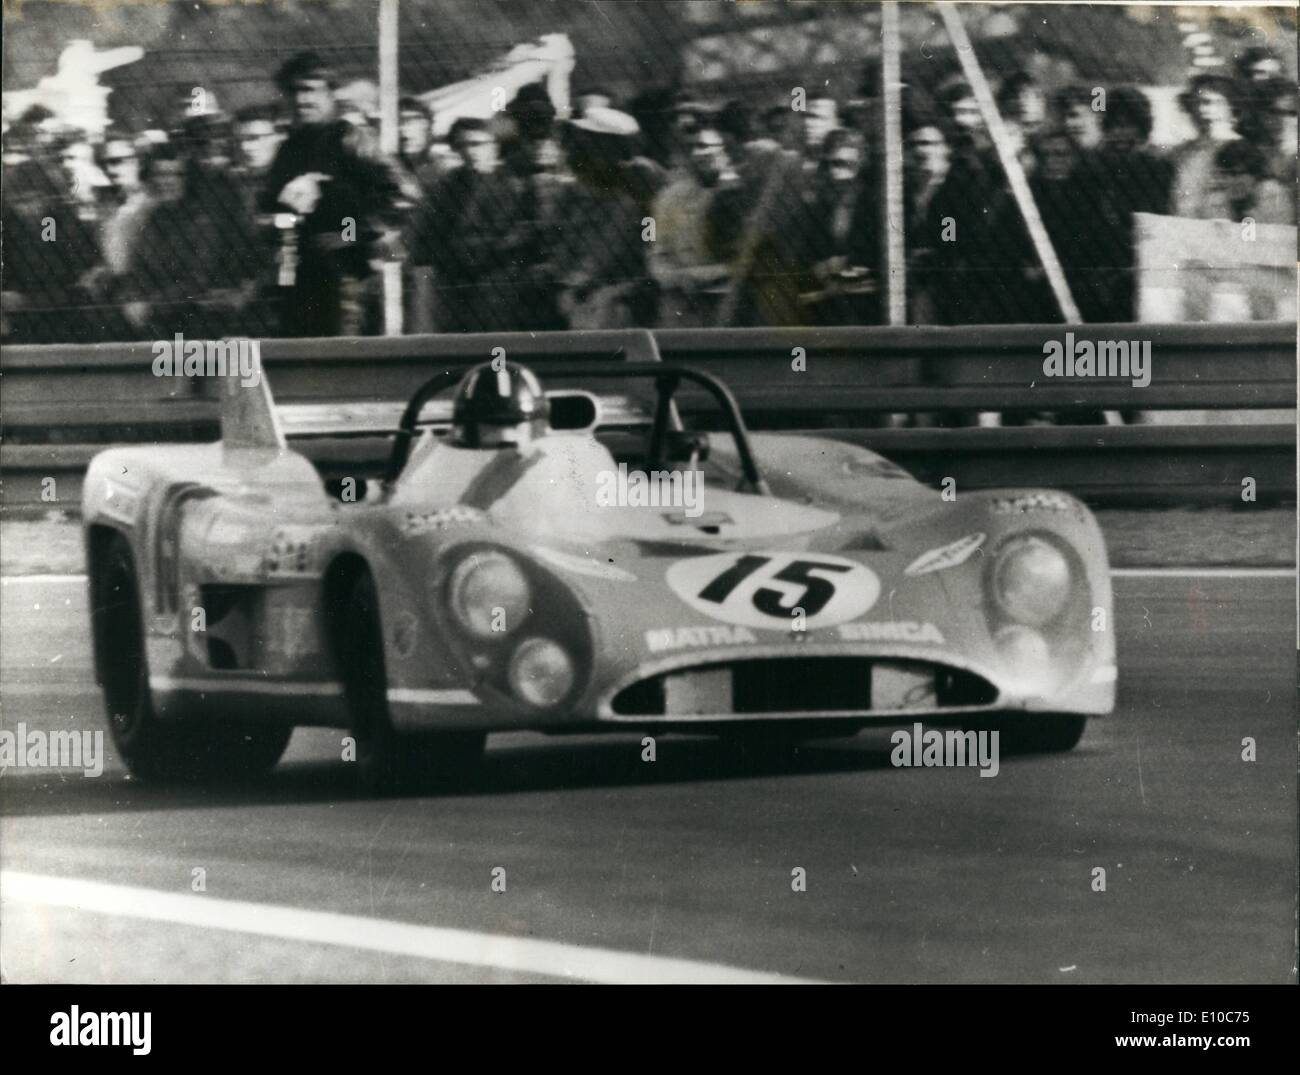 Le Mans 1972 Stock Photos Le Mans 1972 Stock Images Alamy